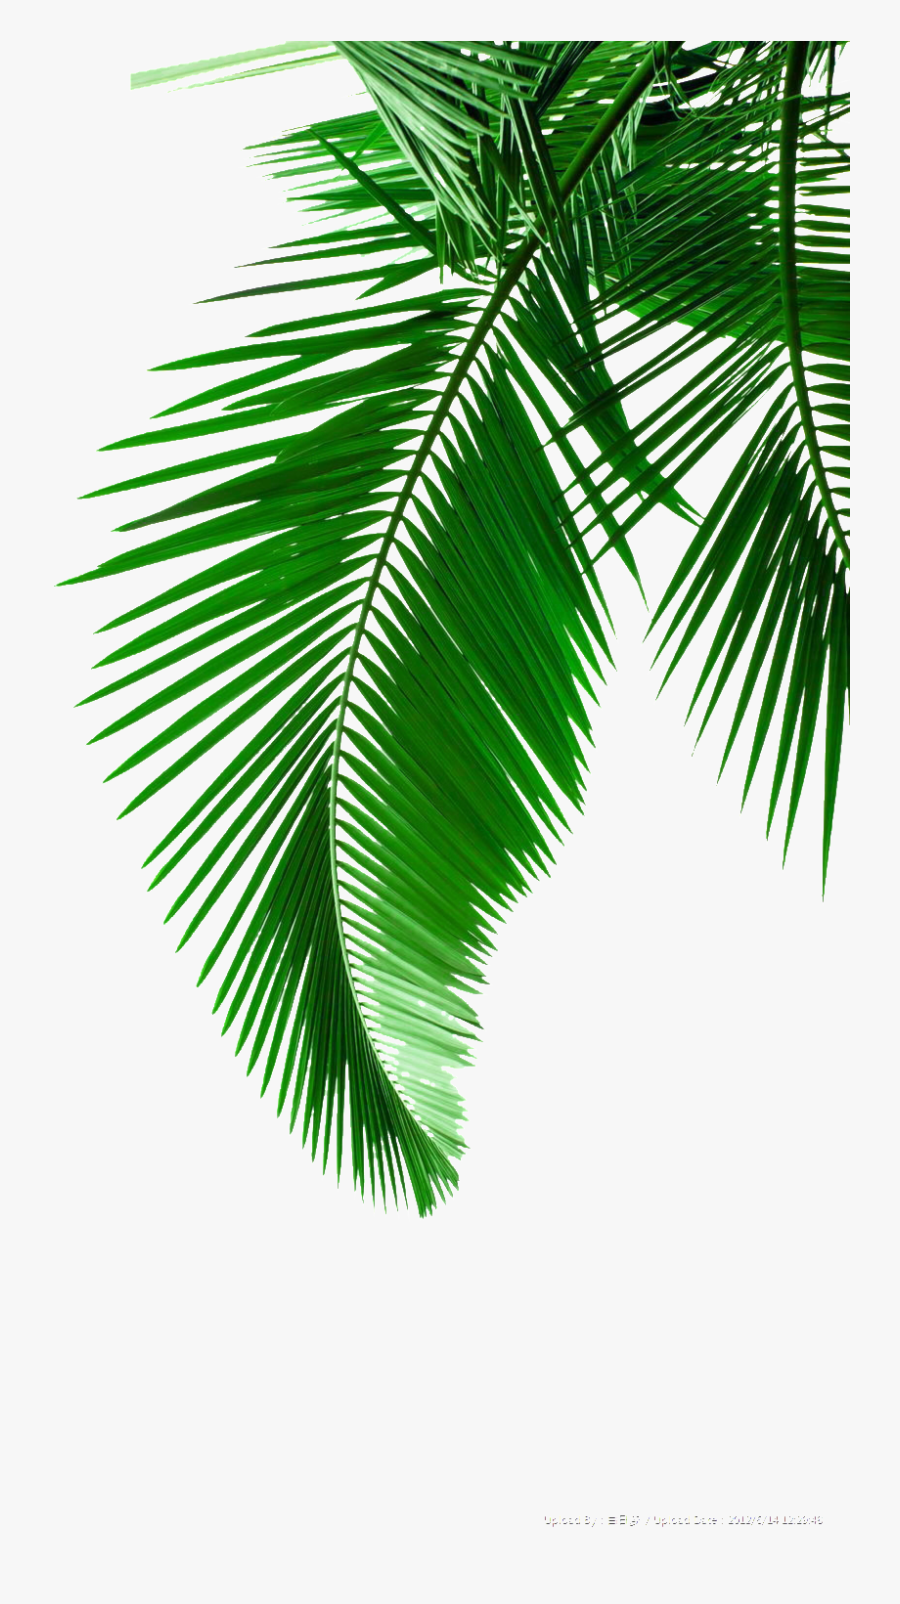 Creative Green Leaf Drawing Transparent Decorative - Black And White Palm Tree Leaves, Transparent Clipart